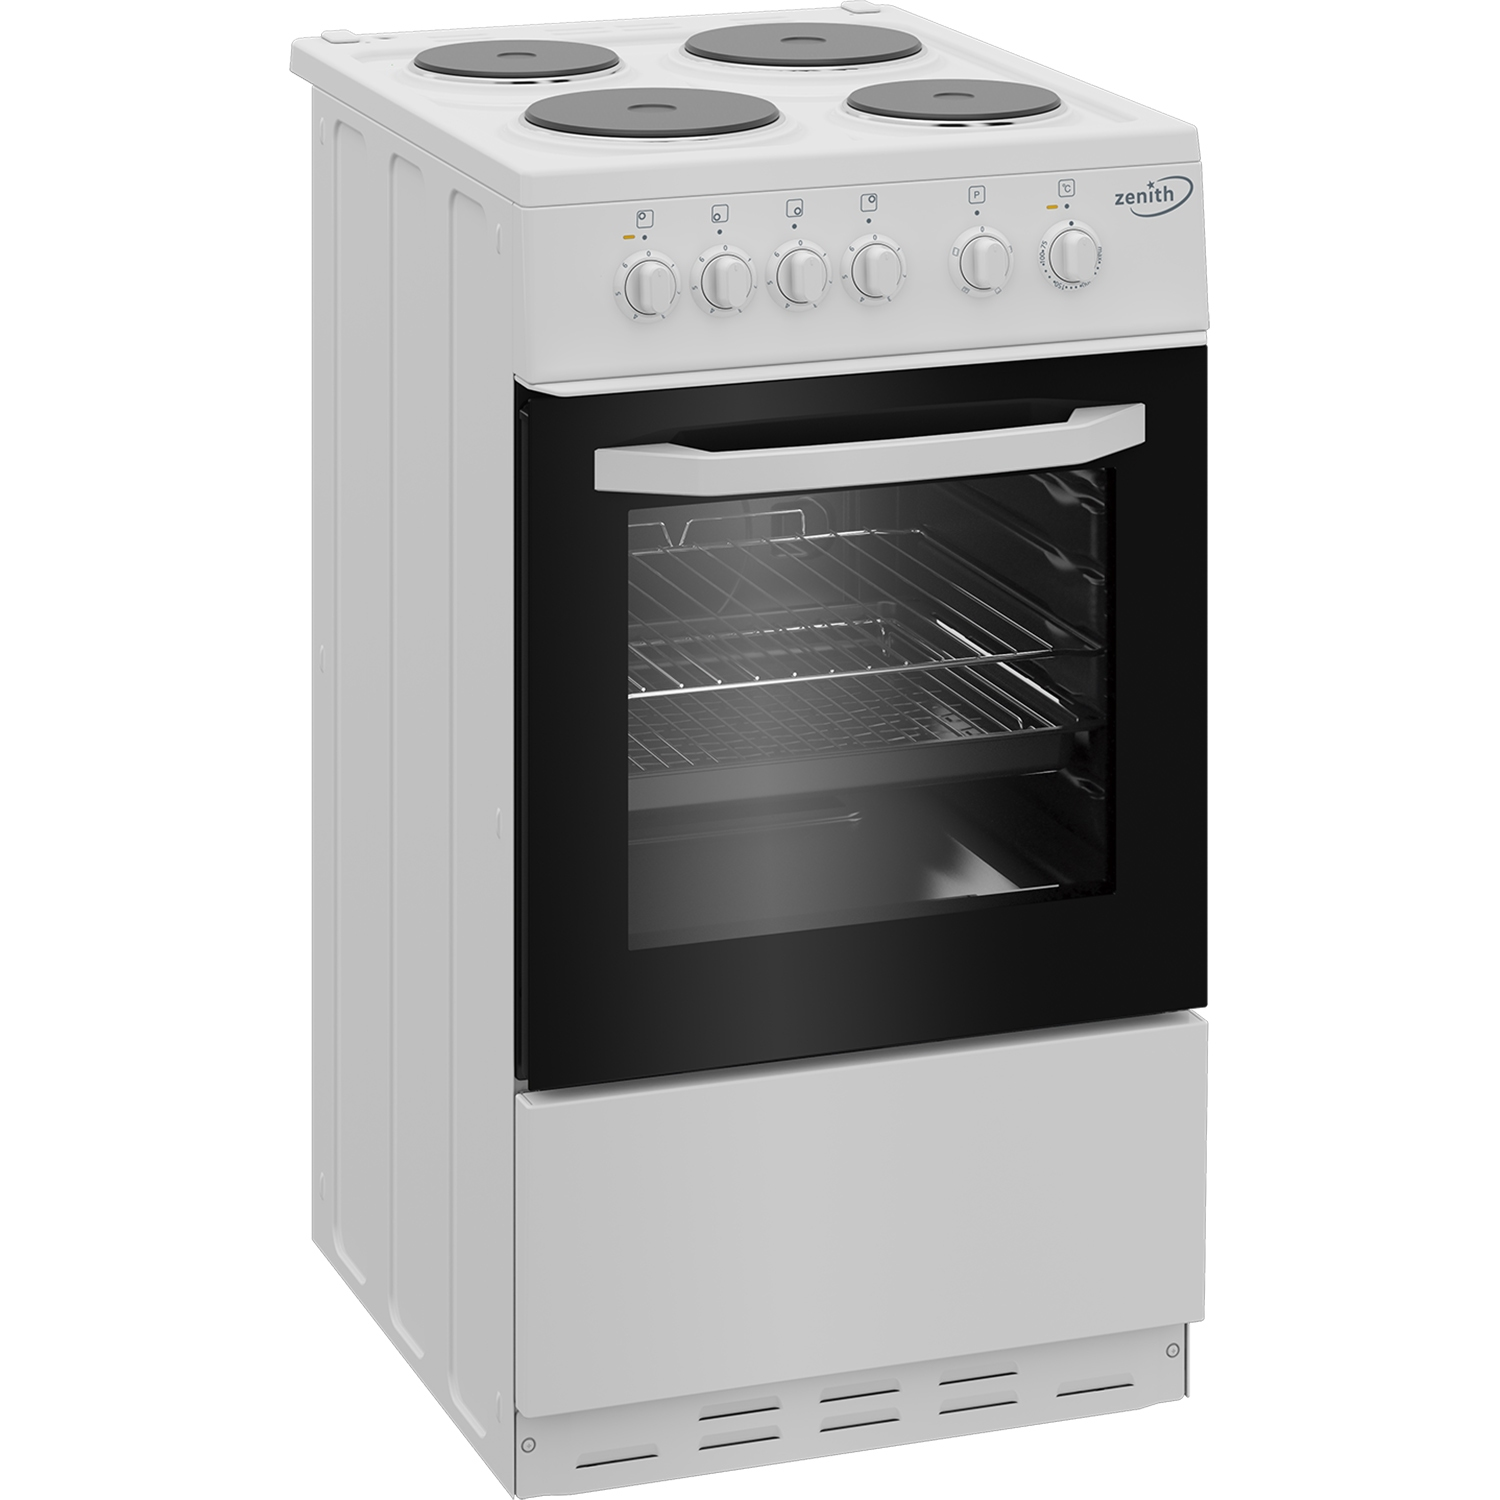 Zenith 50cm Single Oven Electric Cooker with solid plate - hob White- A Energy Rated - 4